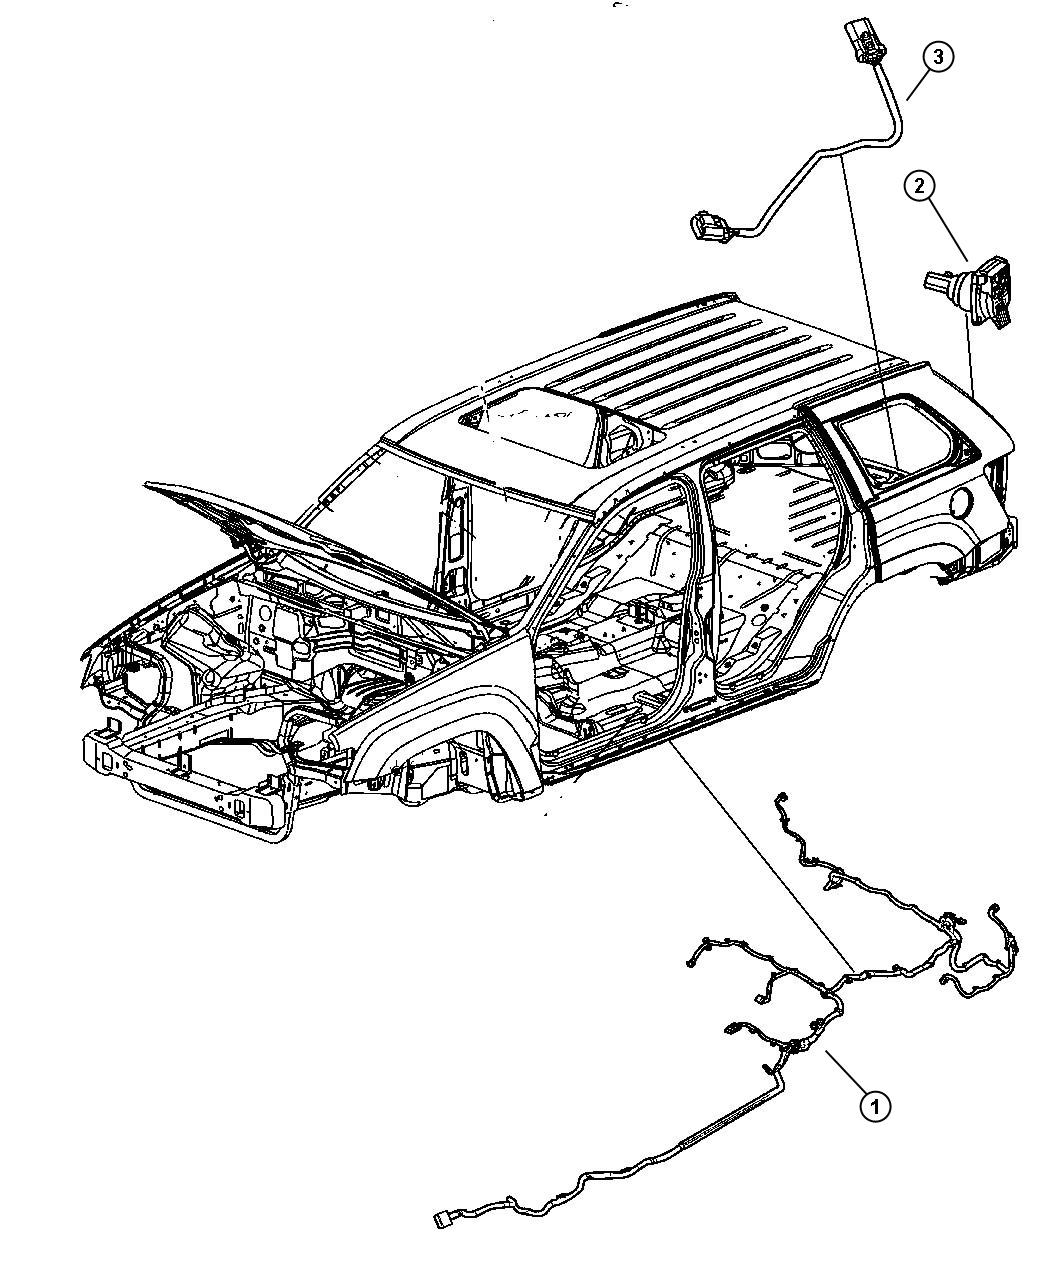 2008 Jeep Grand Cherokee Wiring. Underbody. Xgm, tow, dhx